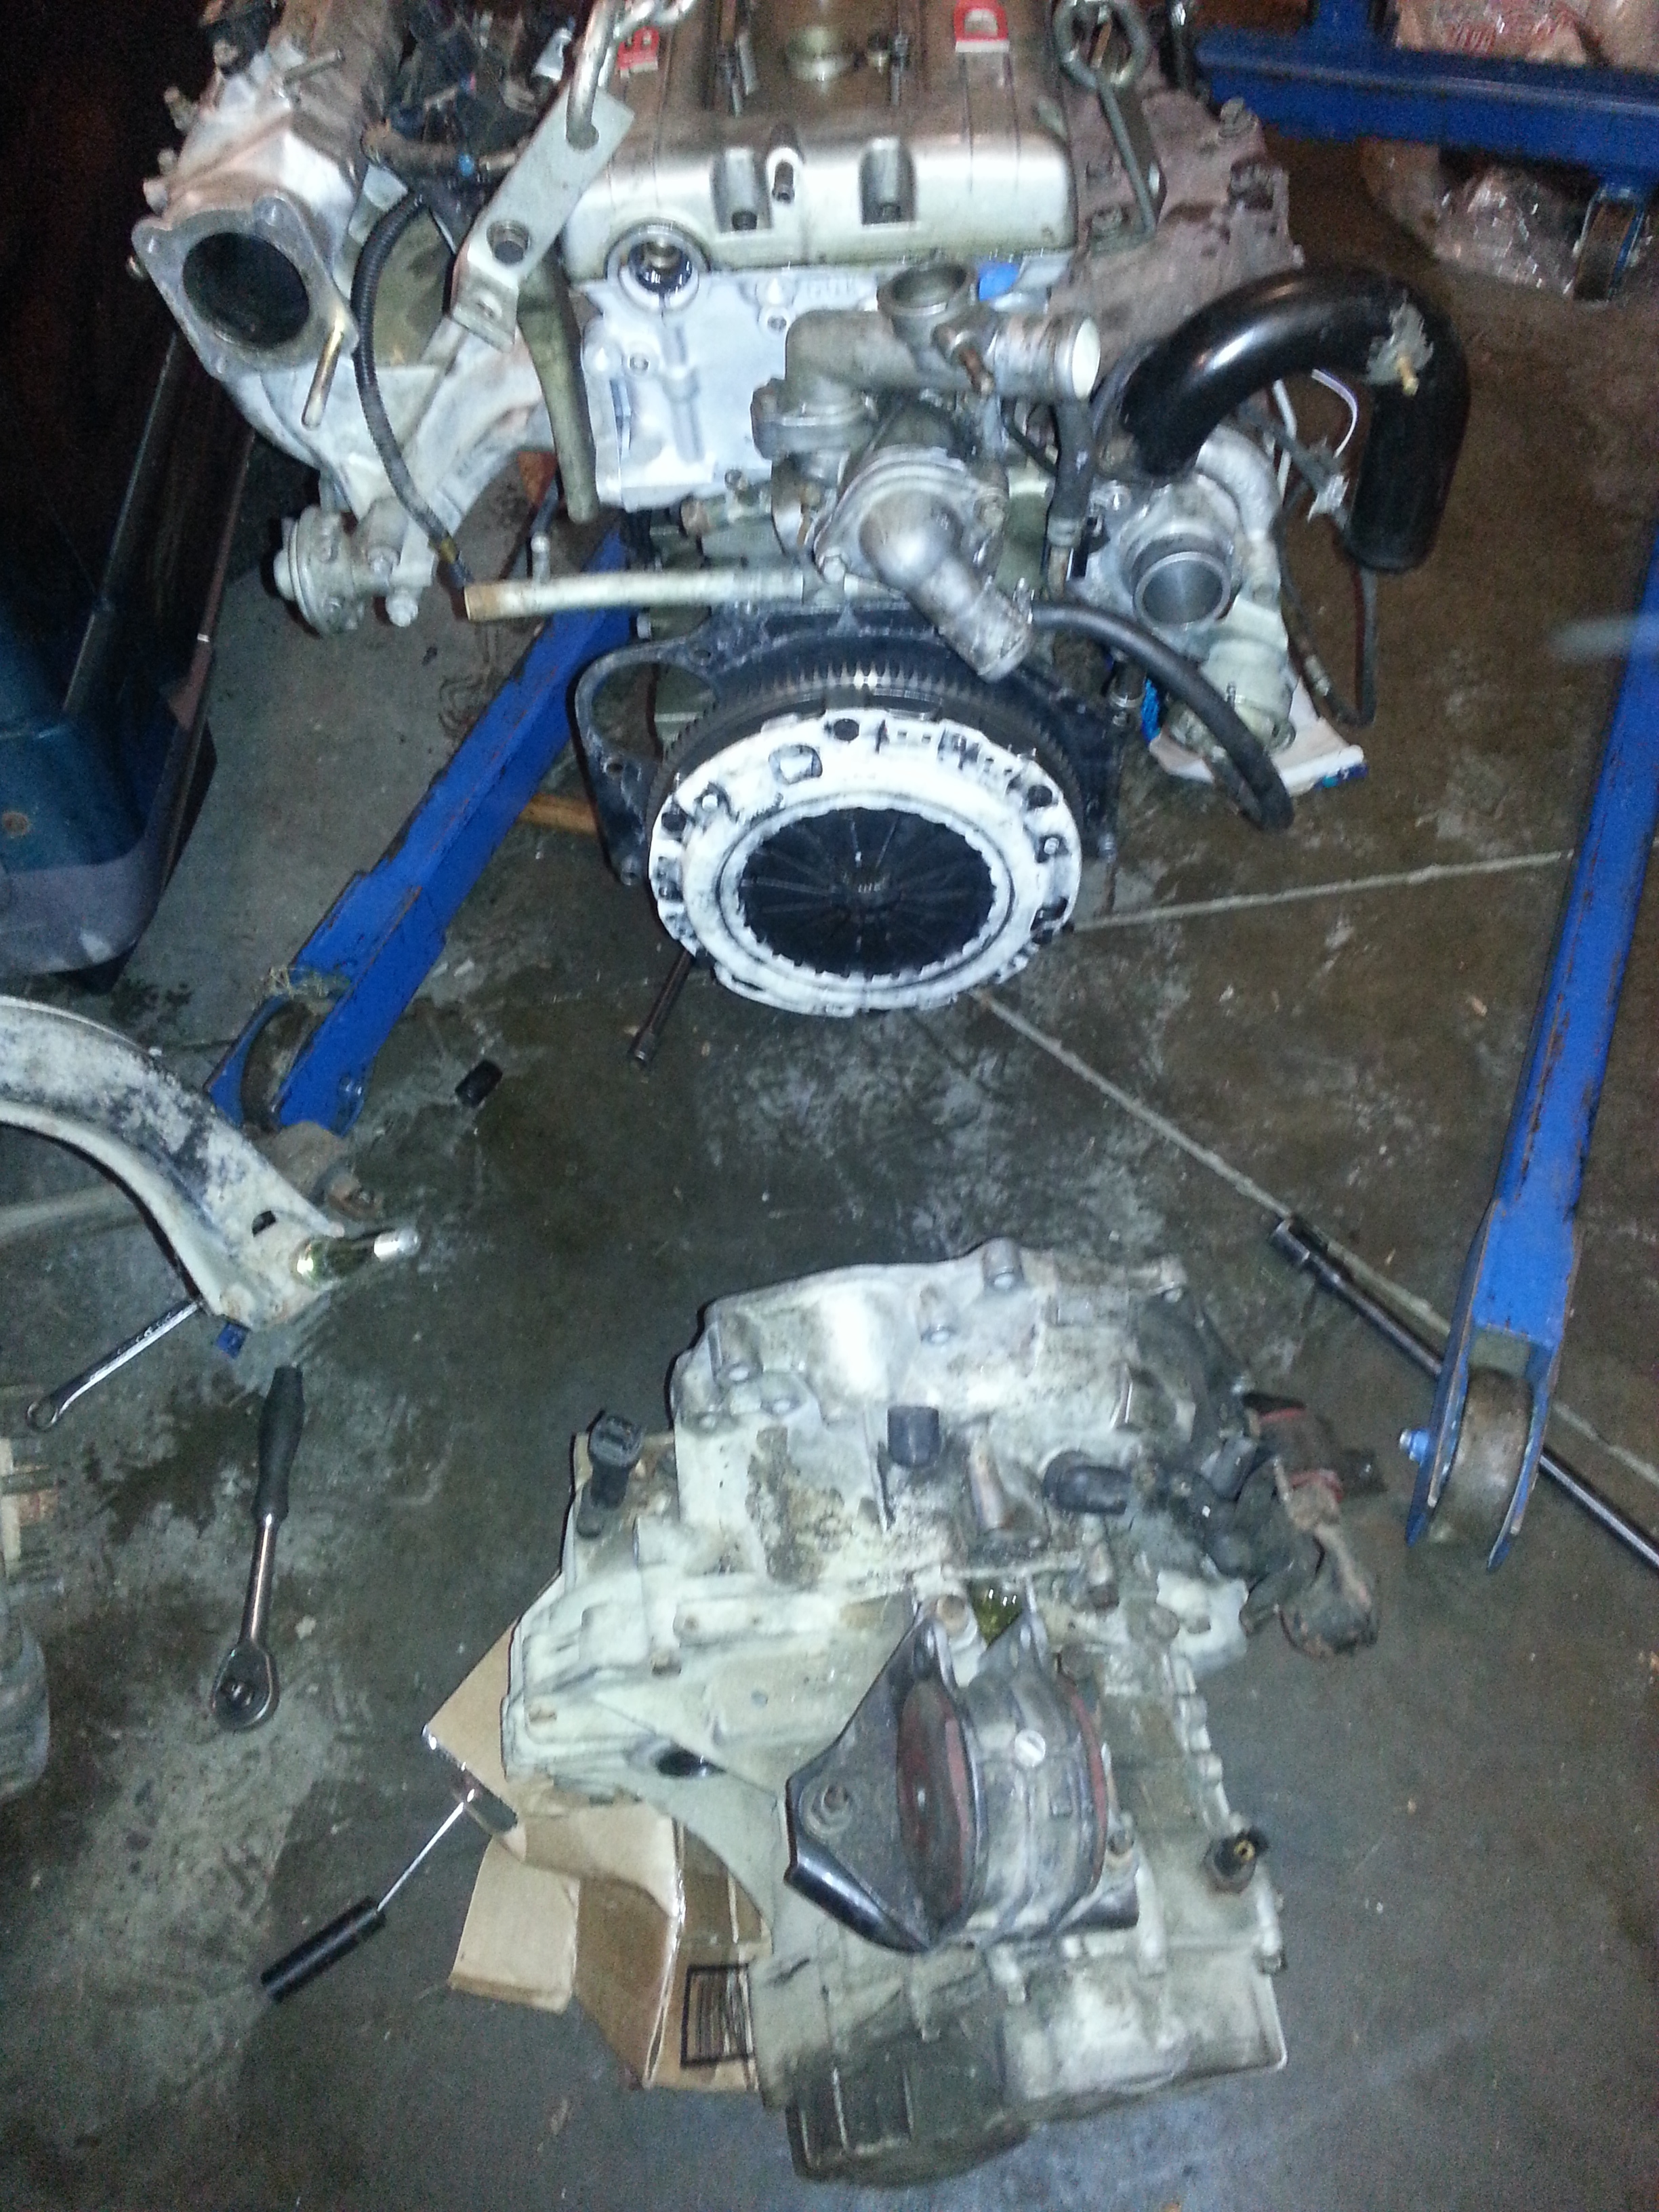 Putting the transmission onto the flywheel/clutch